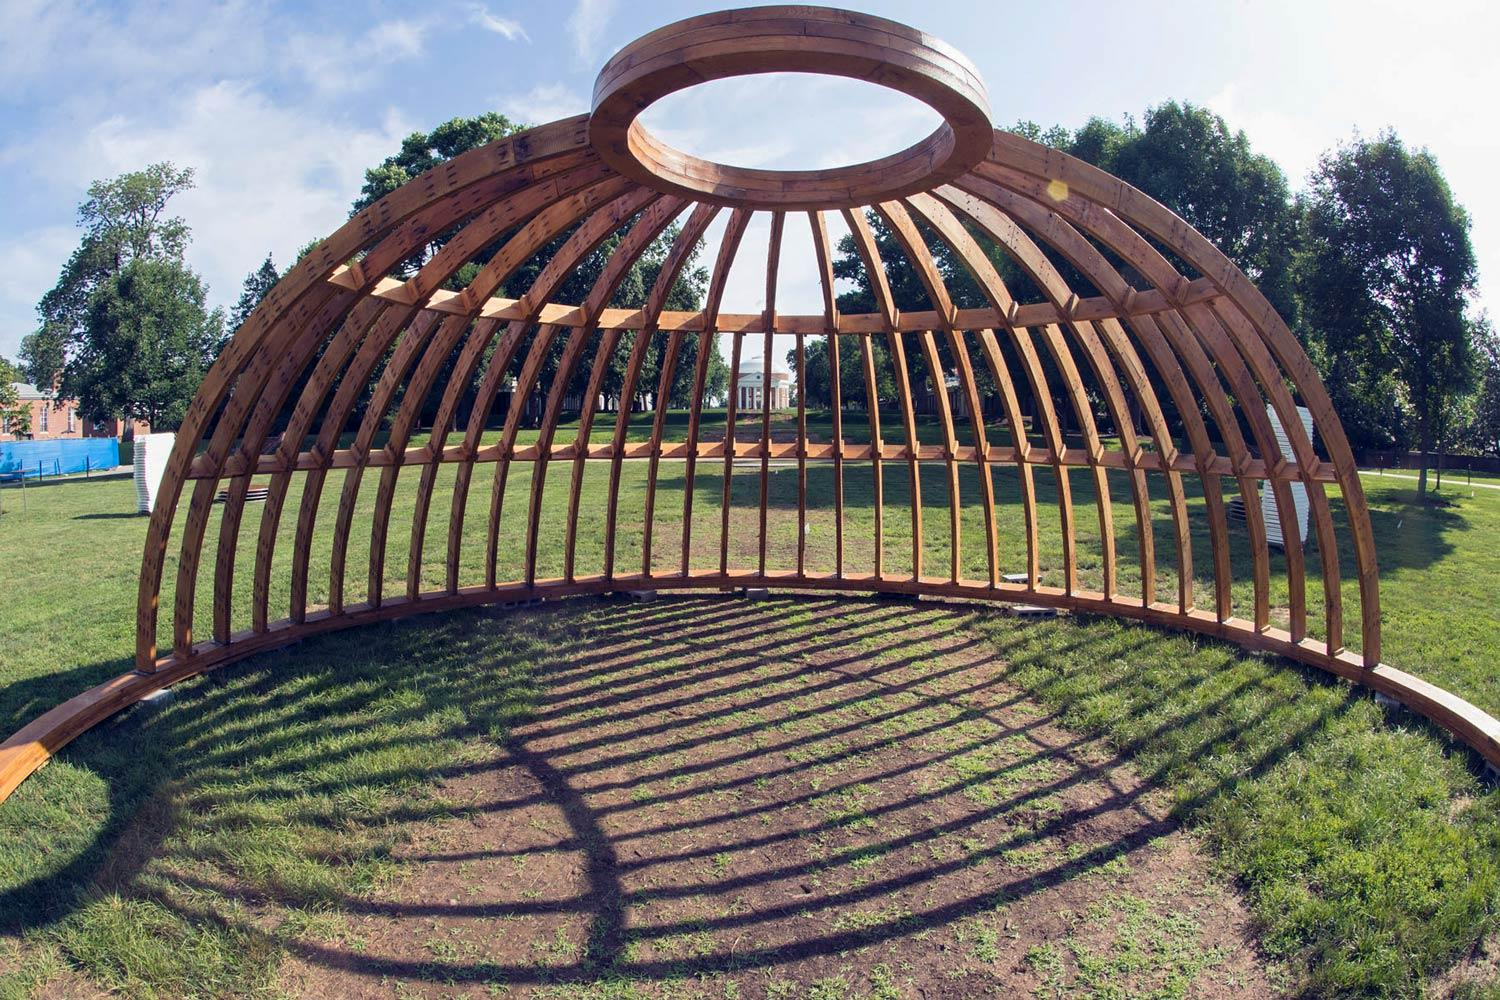 Visitors to the Lawn can now get a glimpse of what the original wooden dome would have looked like.